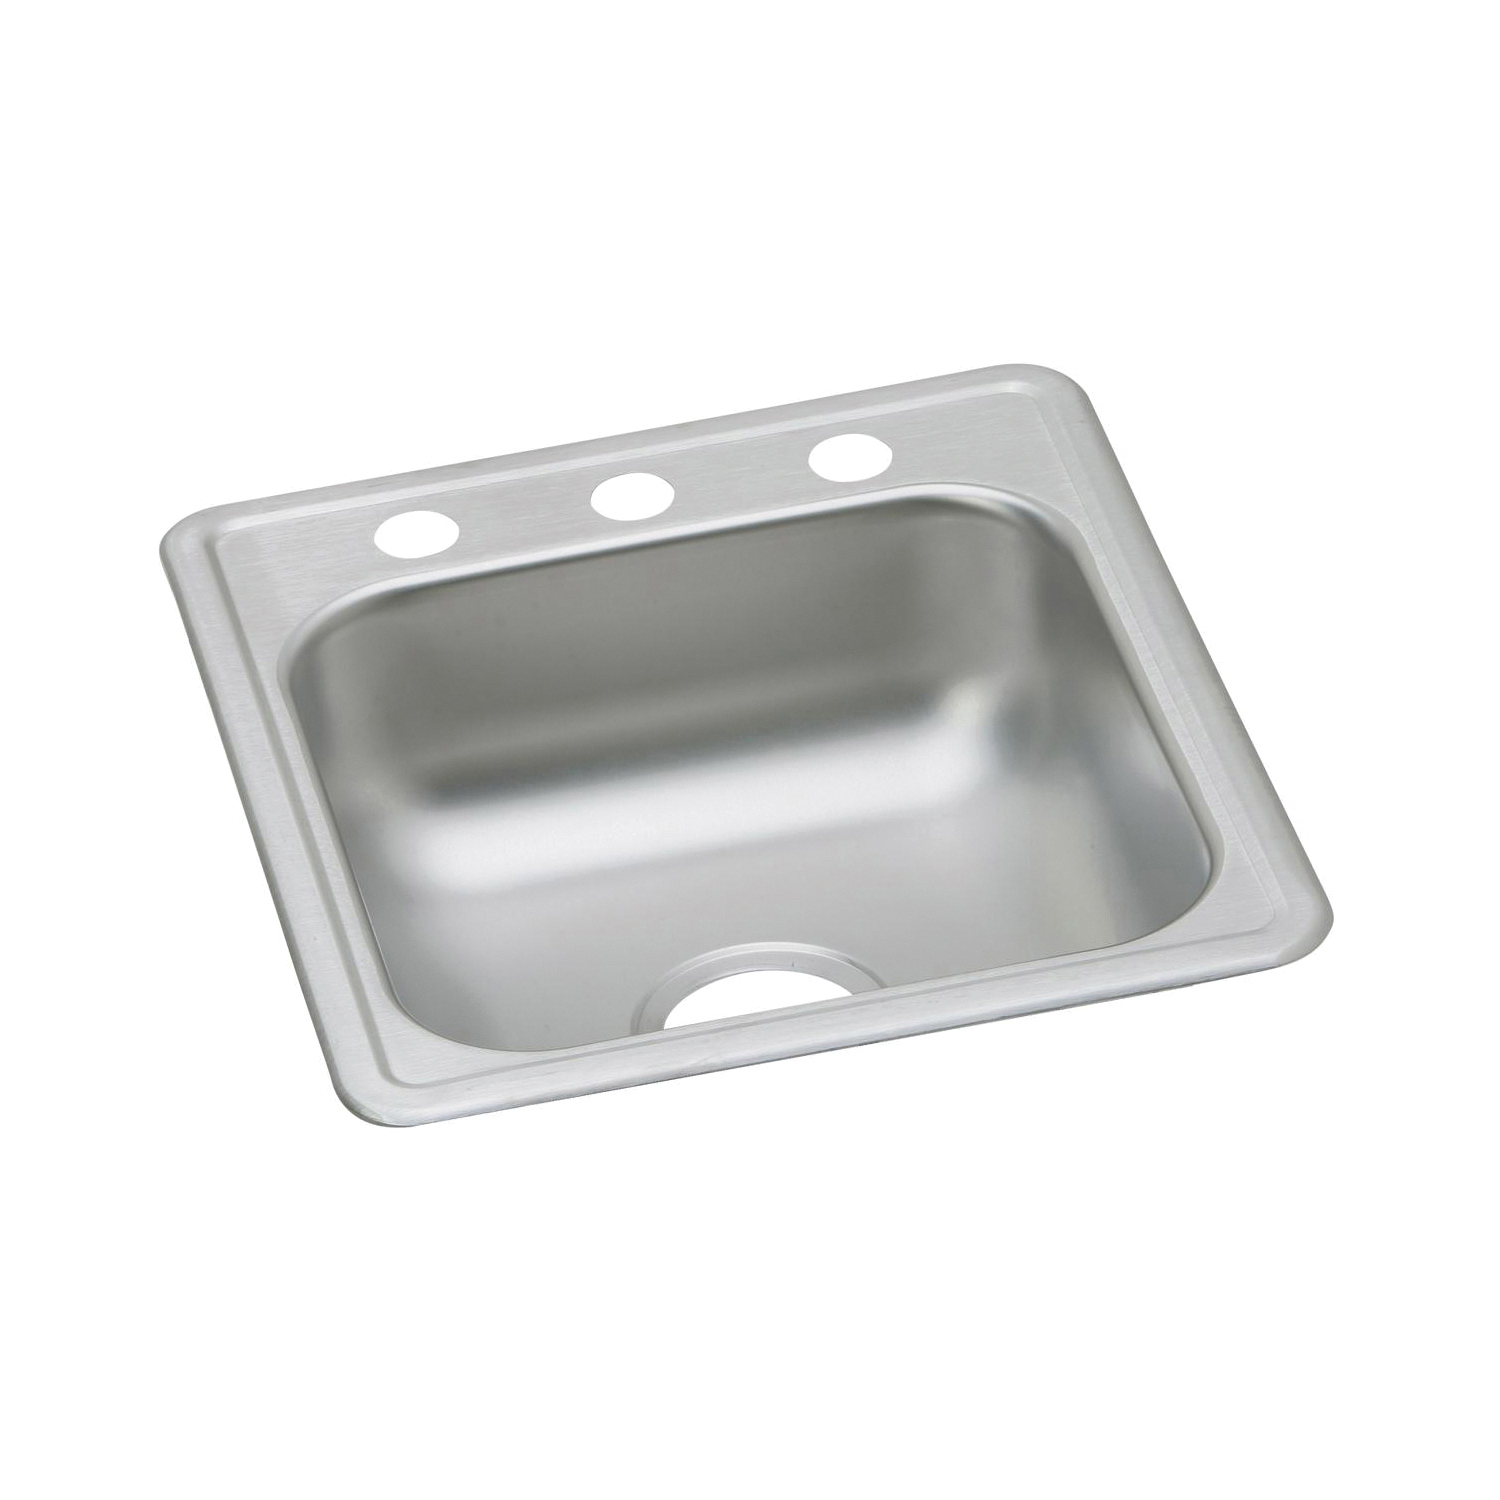 Elkay® D117193 Dayton® Bar Sink, Rectangular, 3 Faucet Holes, 19 in W x 6-3/16 in D x 17 in H, Top Mount, Stainless Steel, Satin, Domestic